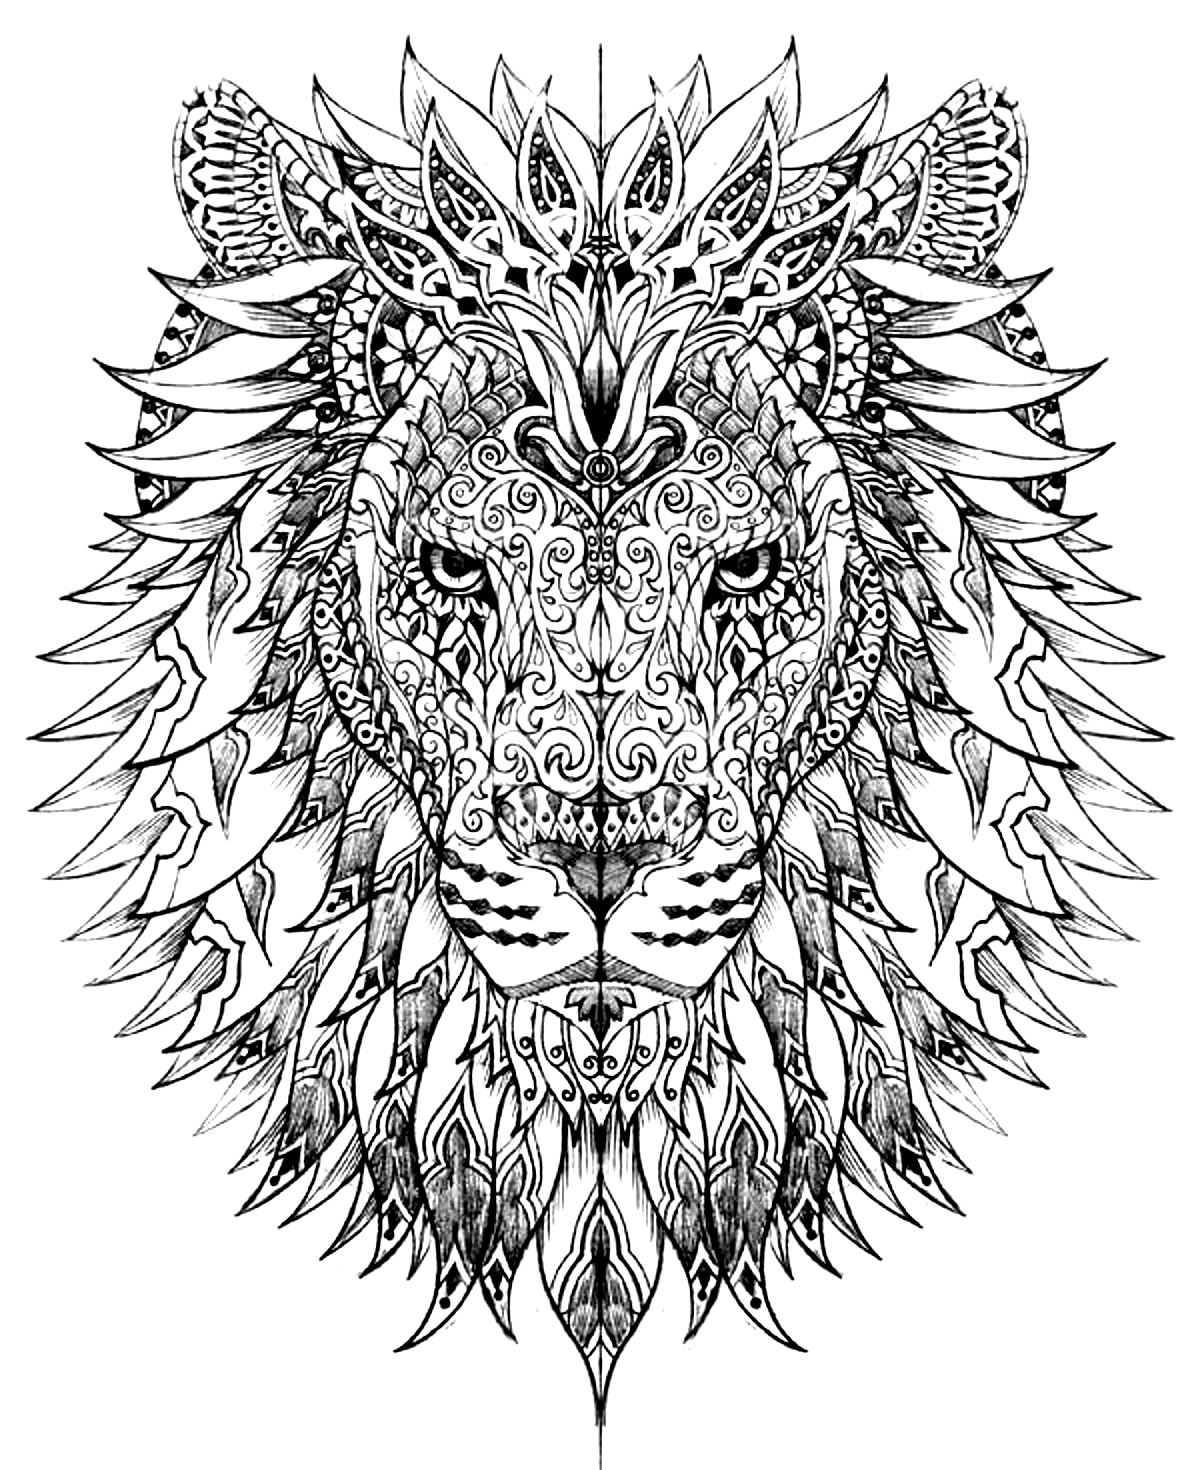 printable difficult coloring pages kids - Difficult Coloring Pages Kids